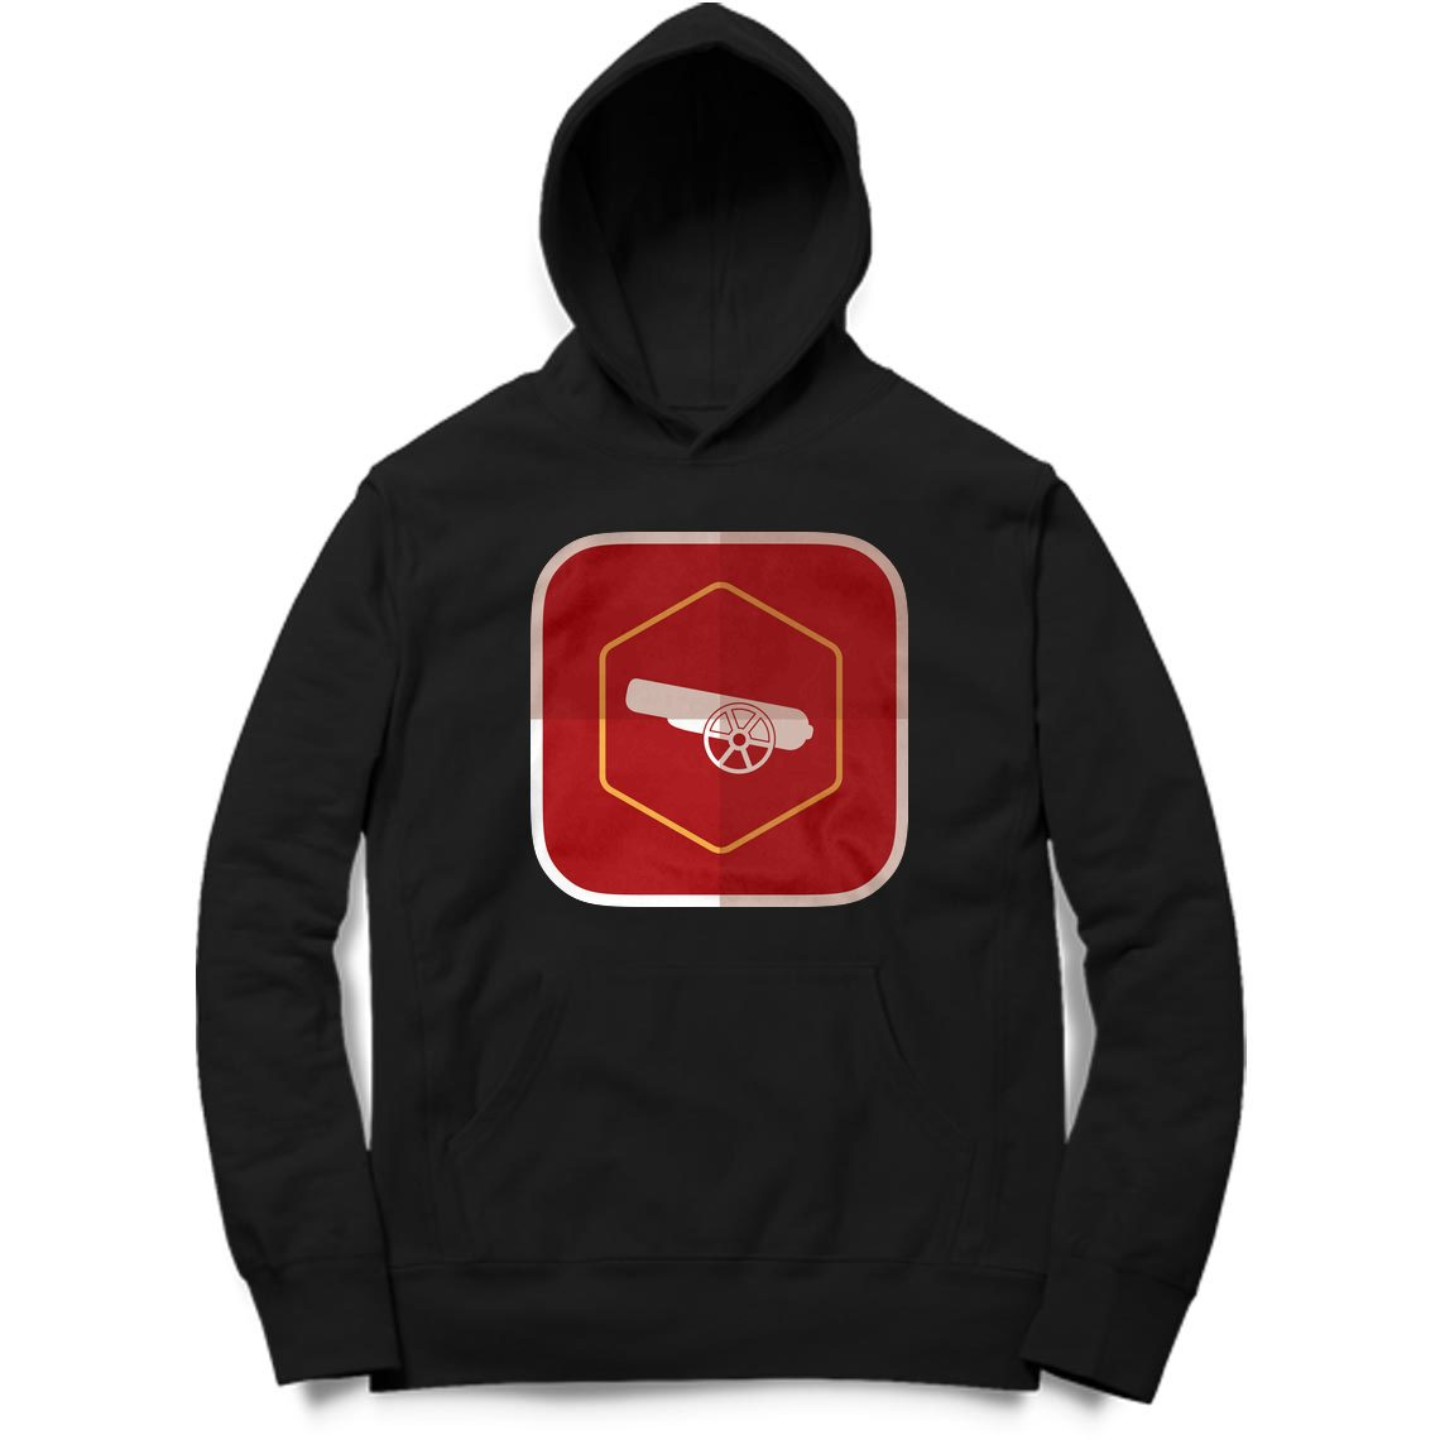 The Arsenal Hoodie